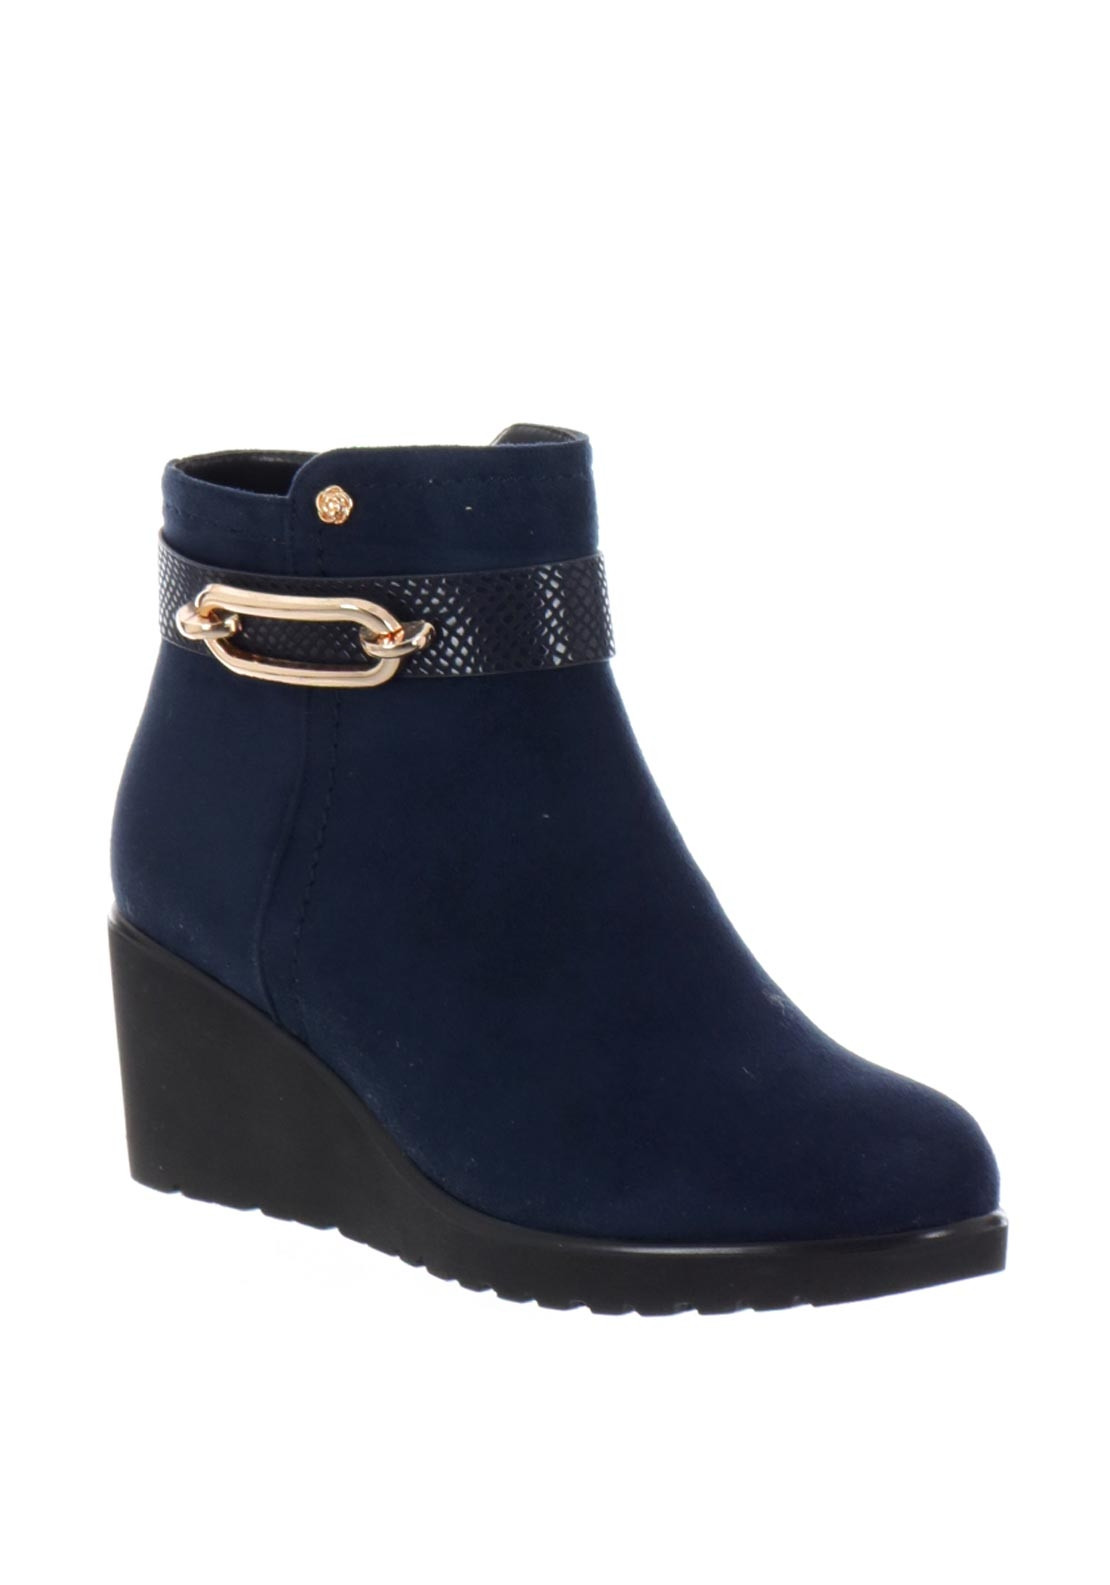 Zanni & Co. Copper Wedged Boots, Navy